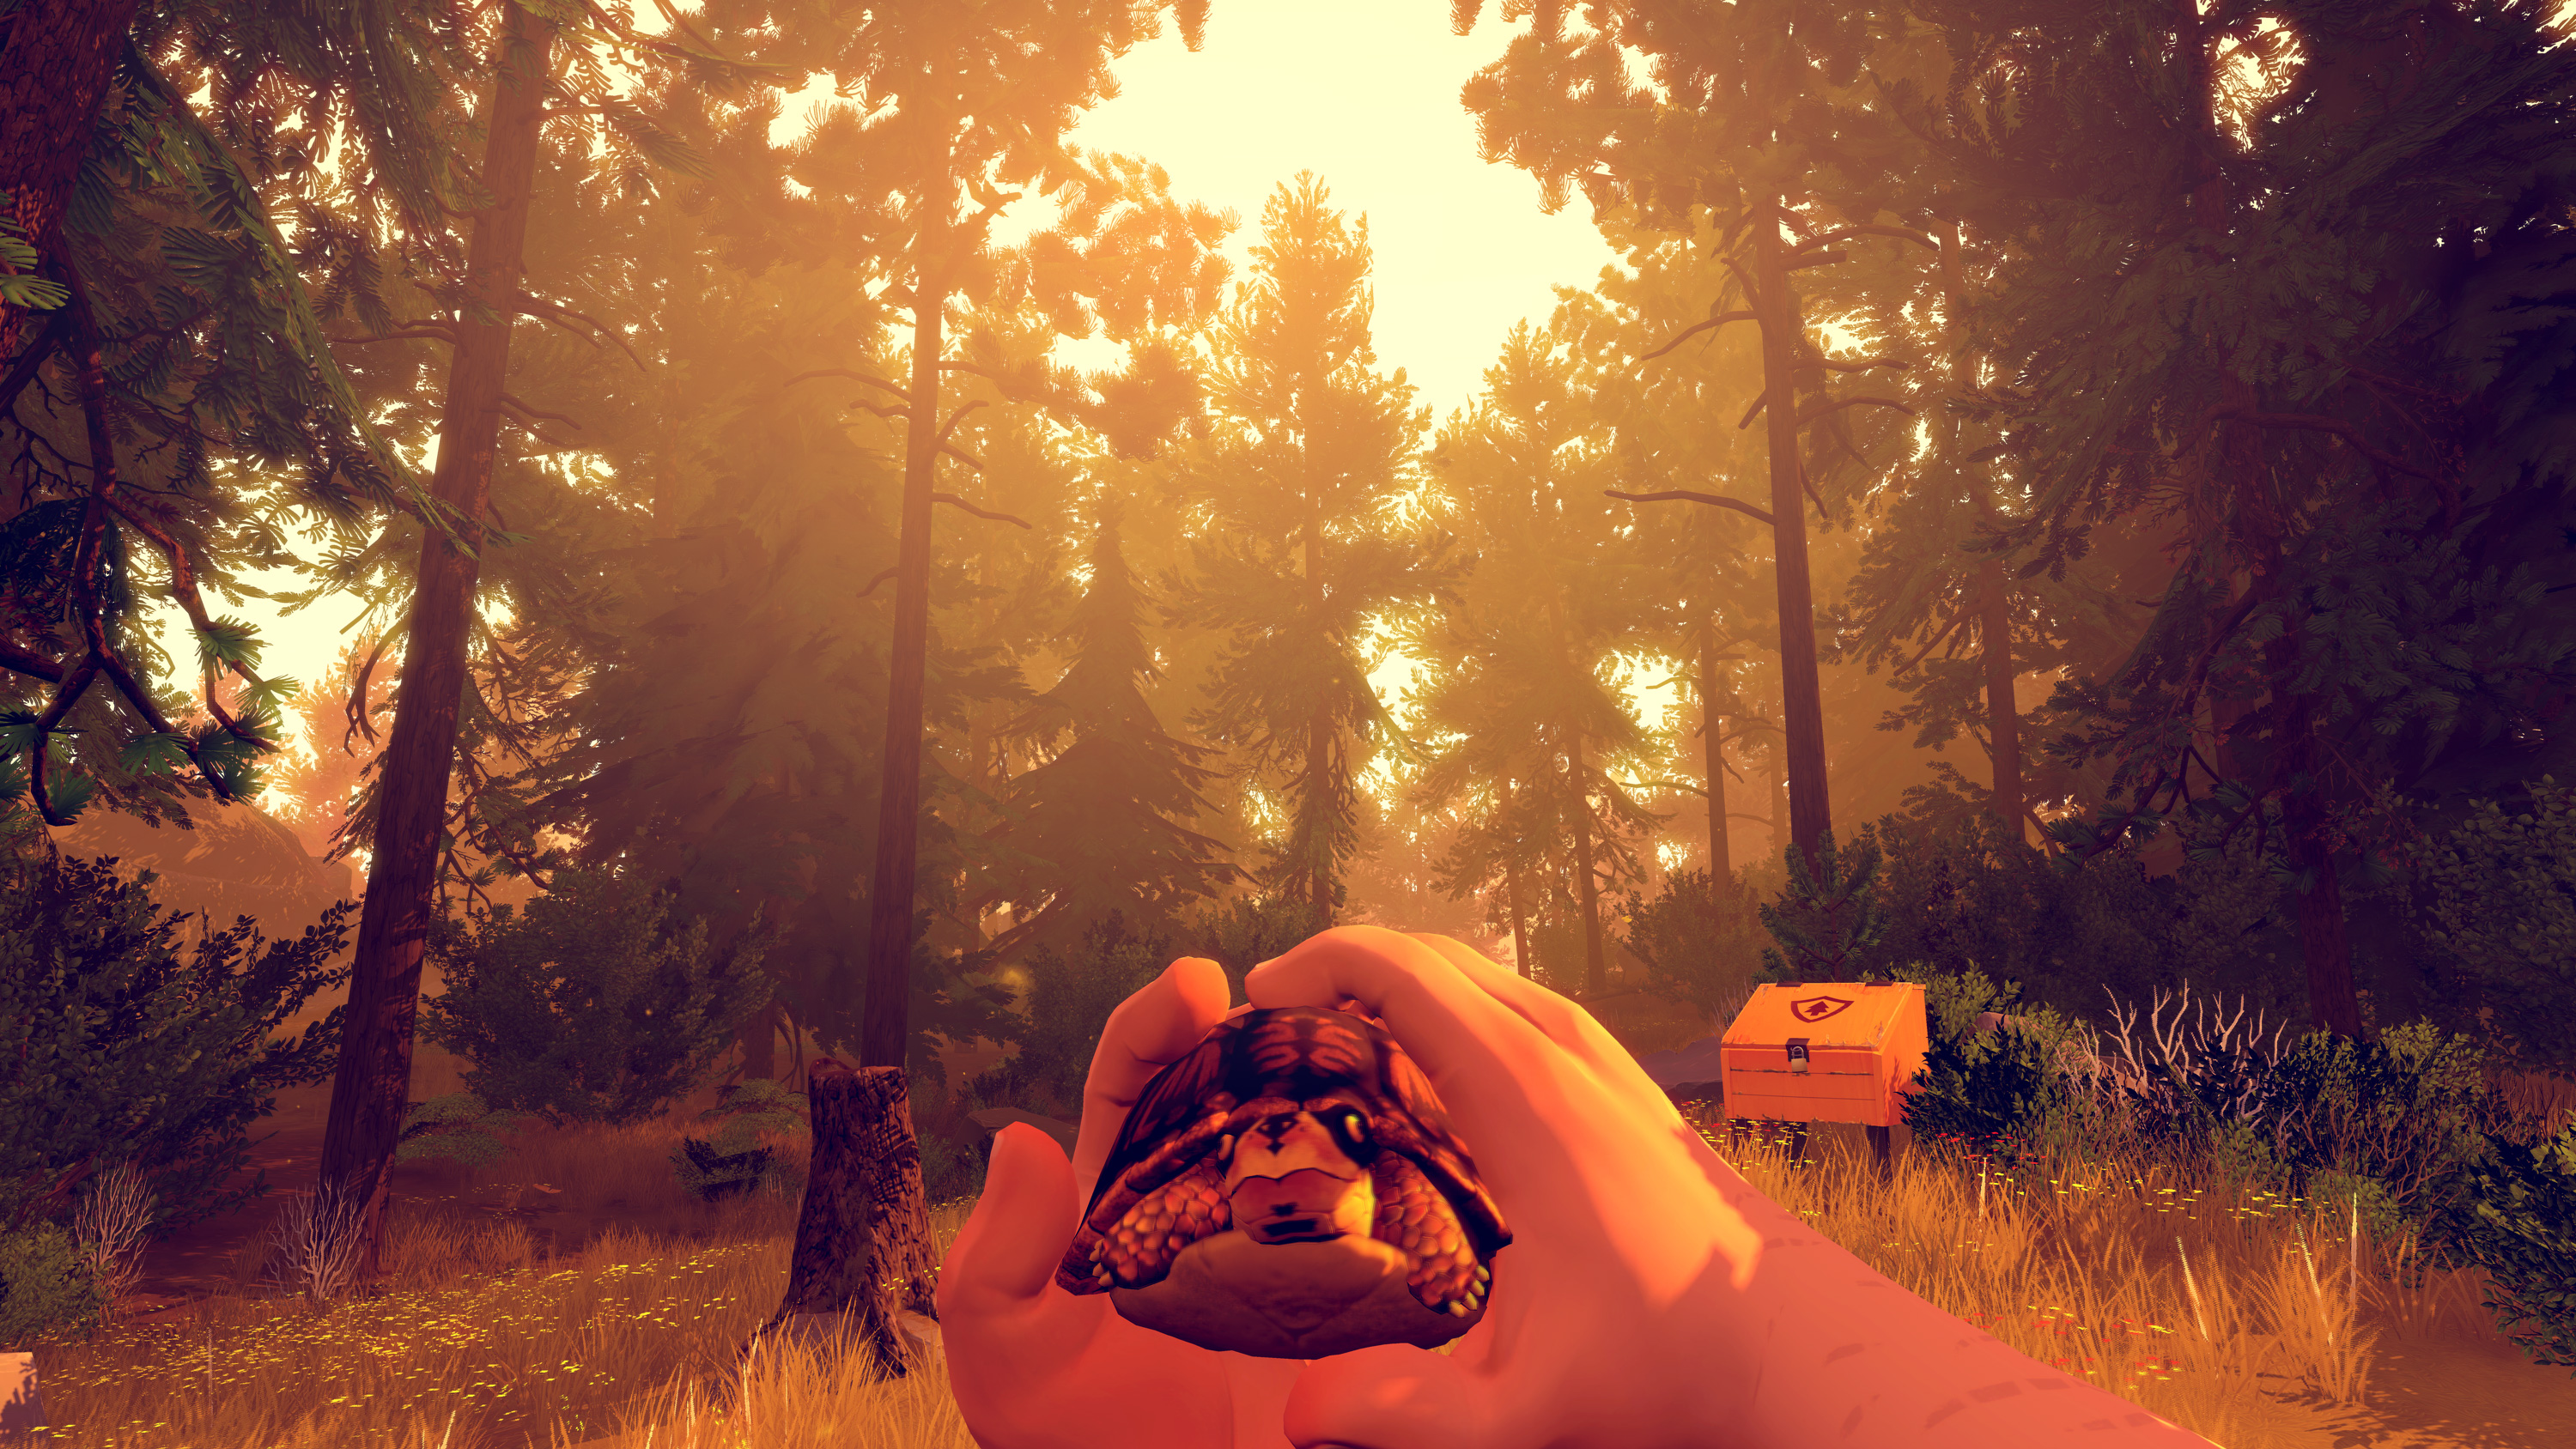 Firewatch Backgrounds on Wallpapers Vista